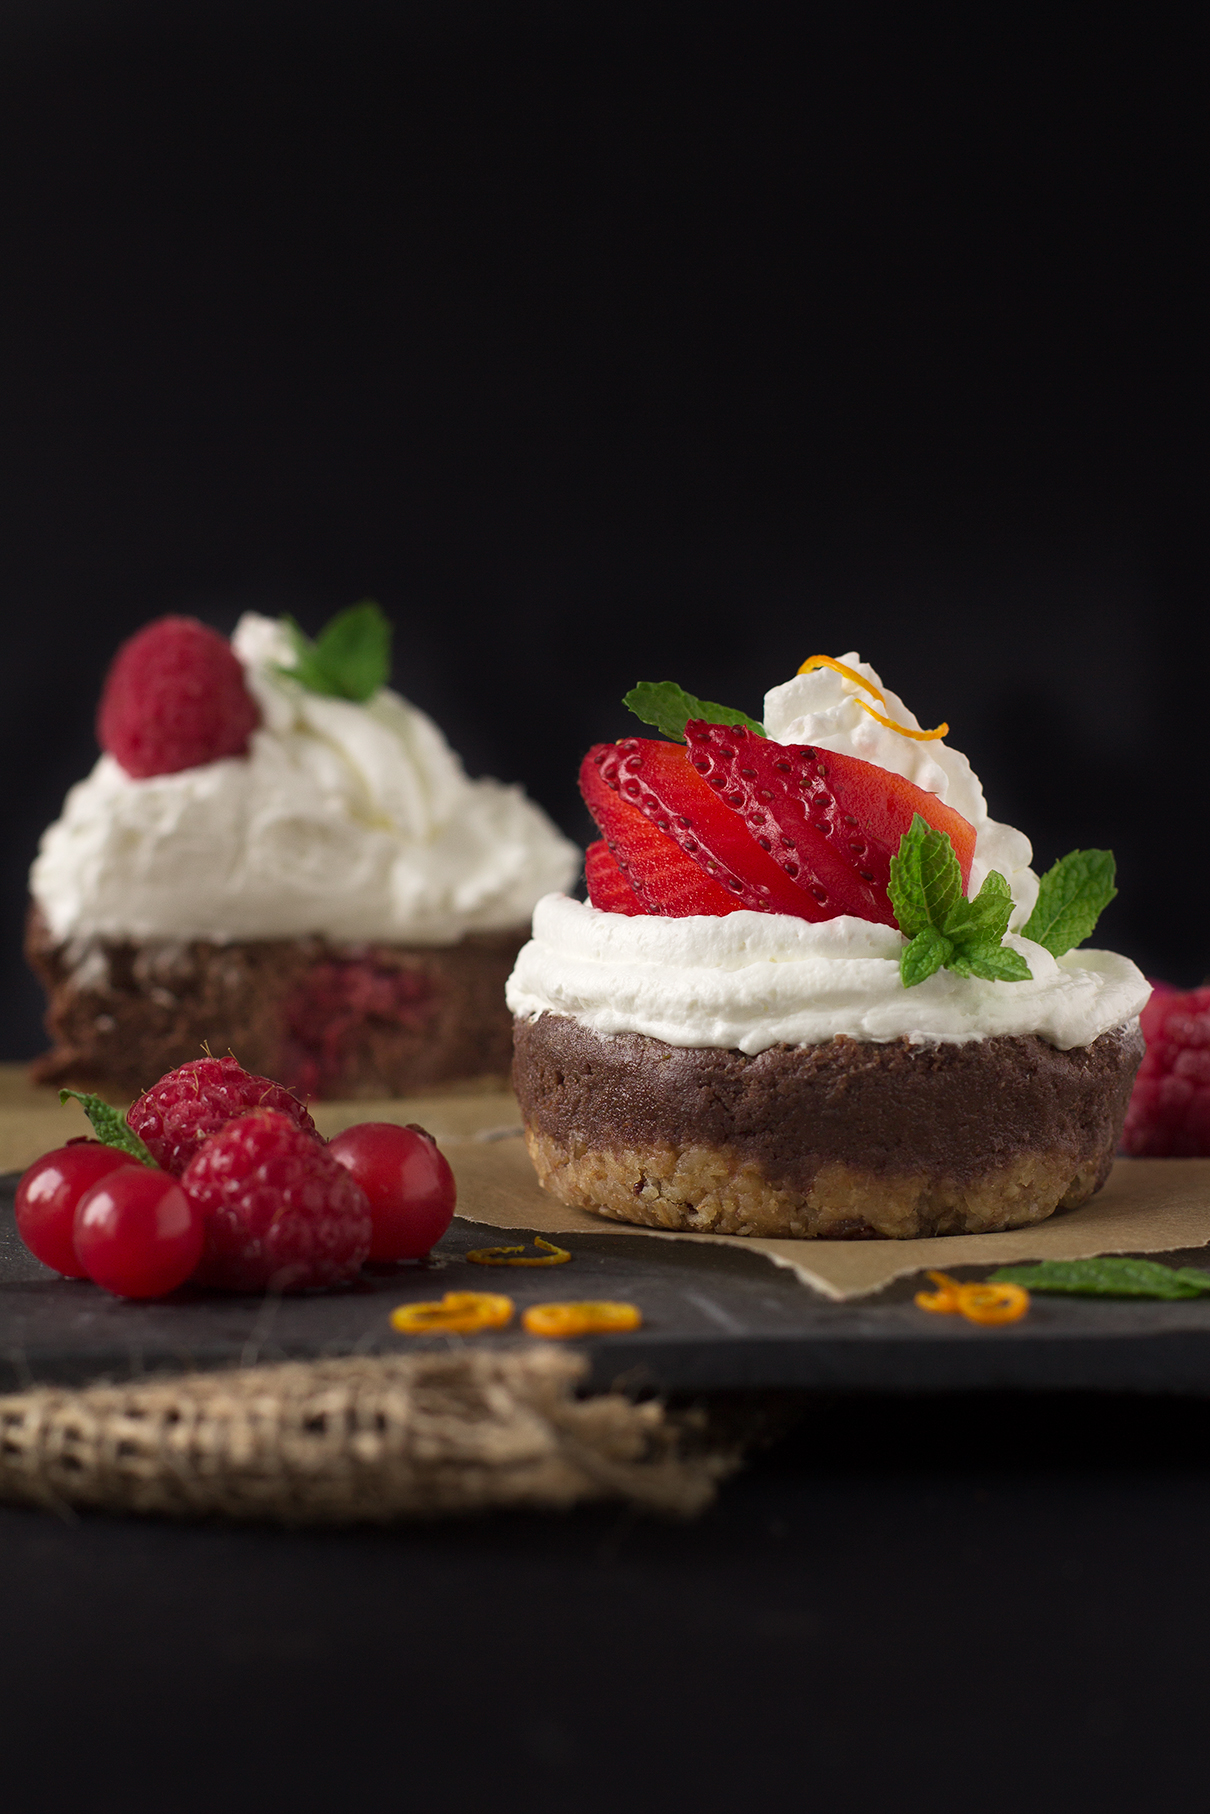 NOBAKE BANANA CHOCOLATE CHEESECAKE CUPCAKES #vegan #glutenfree with coconut whipped cream and fresh berries | VEGAN Cheesecake Cupcakes CIOCCOLATO e BANANA senza cottura con frutti di bosco e panna al latte di cocco